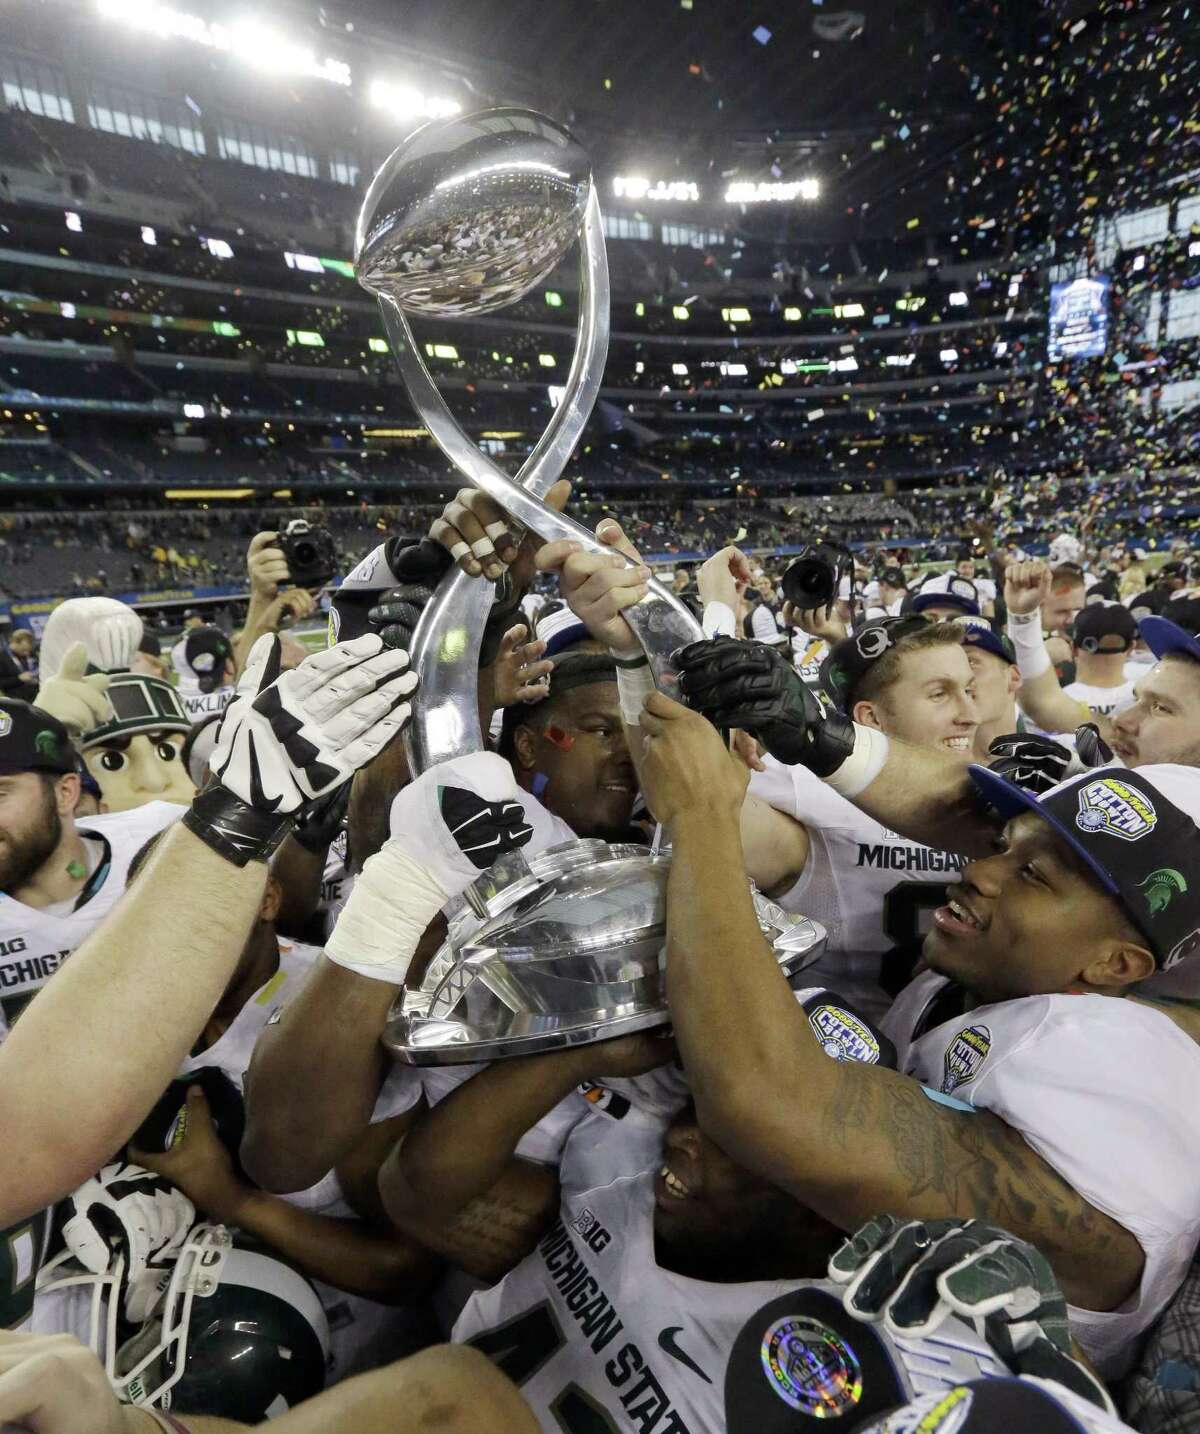 Michigan State players hoist the trophy after they beat Baylor 42-41 in the Cotton Bowl on Thursday in Arlington, Texas.